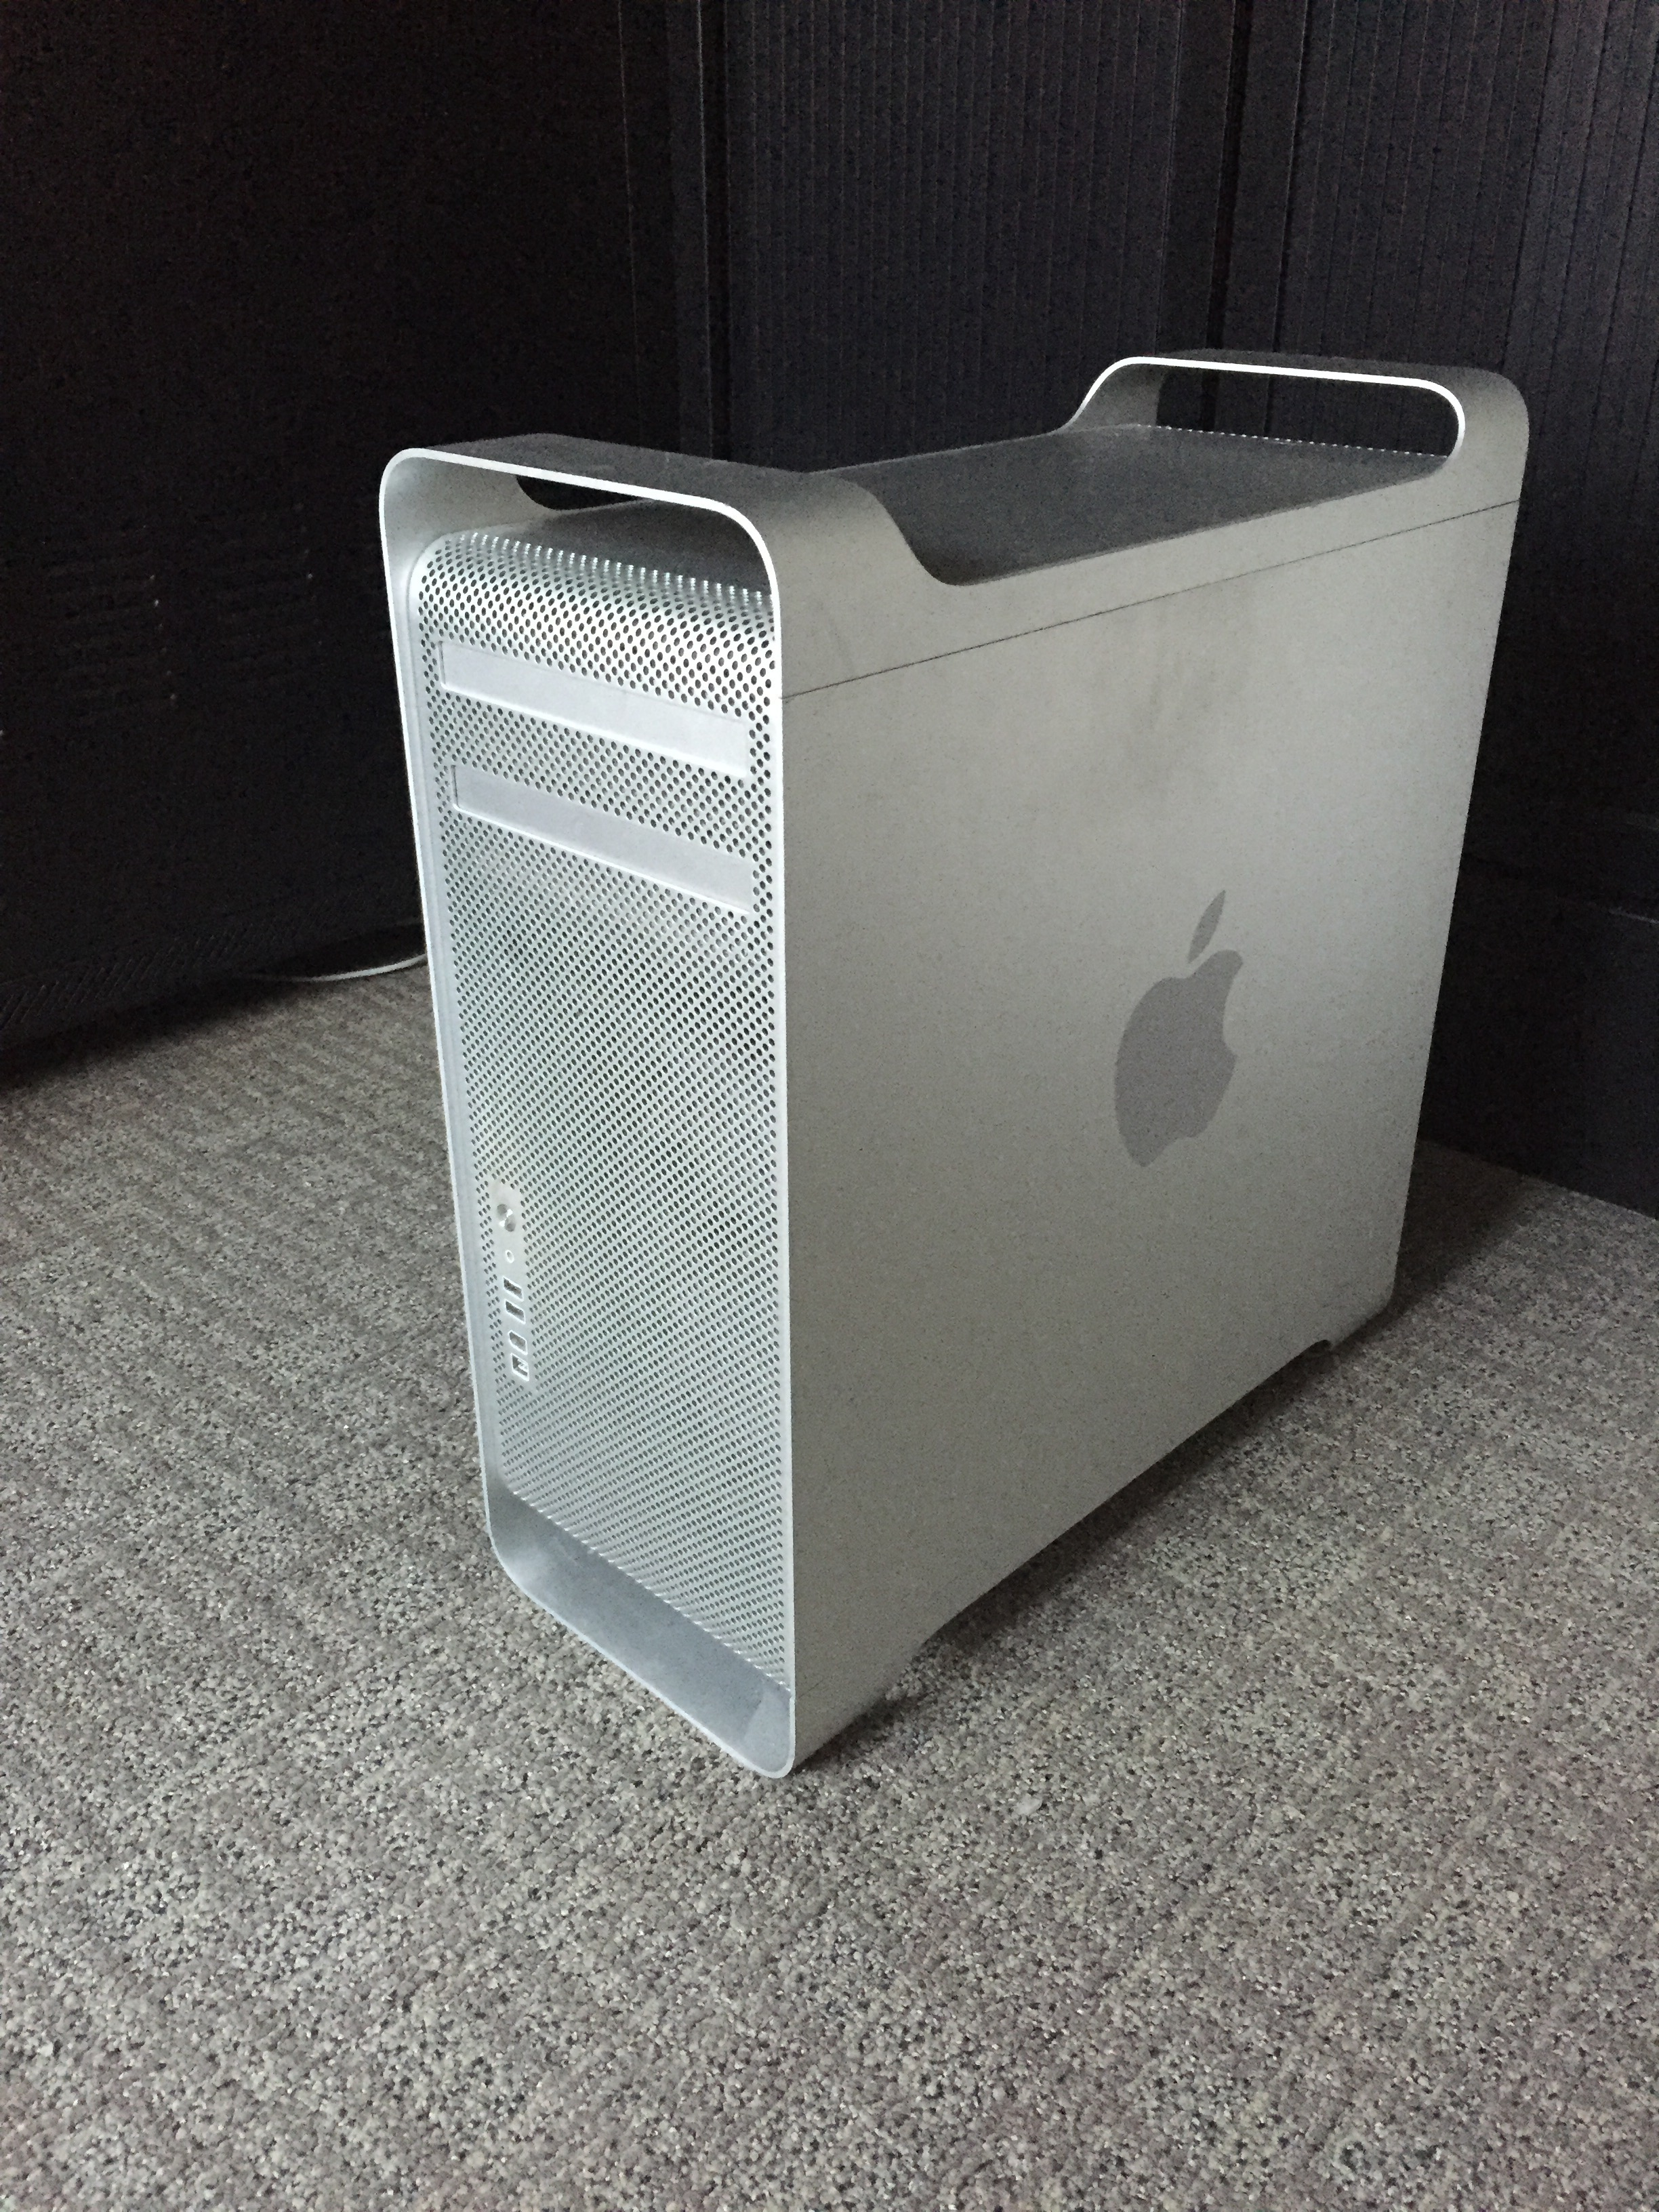 Apple Mac Pro 1,1 – € 595.00 – ( Upgraded Video Card )